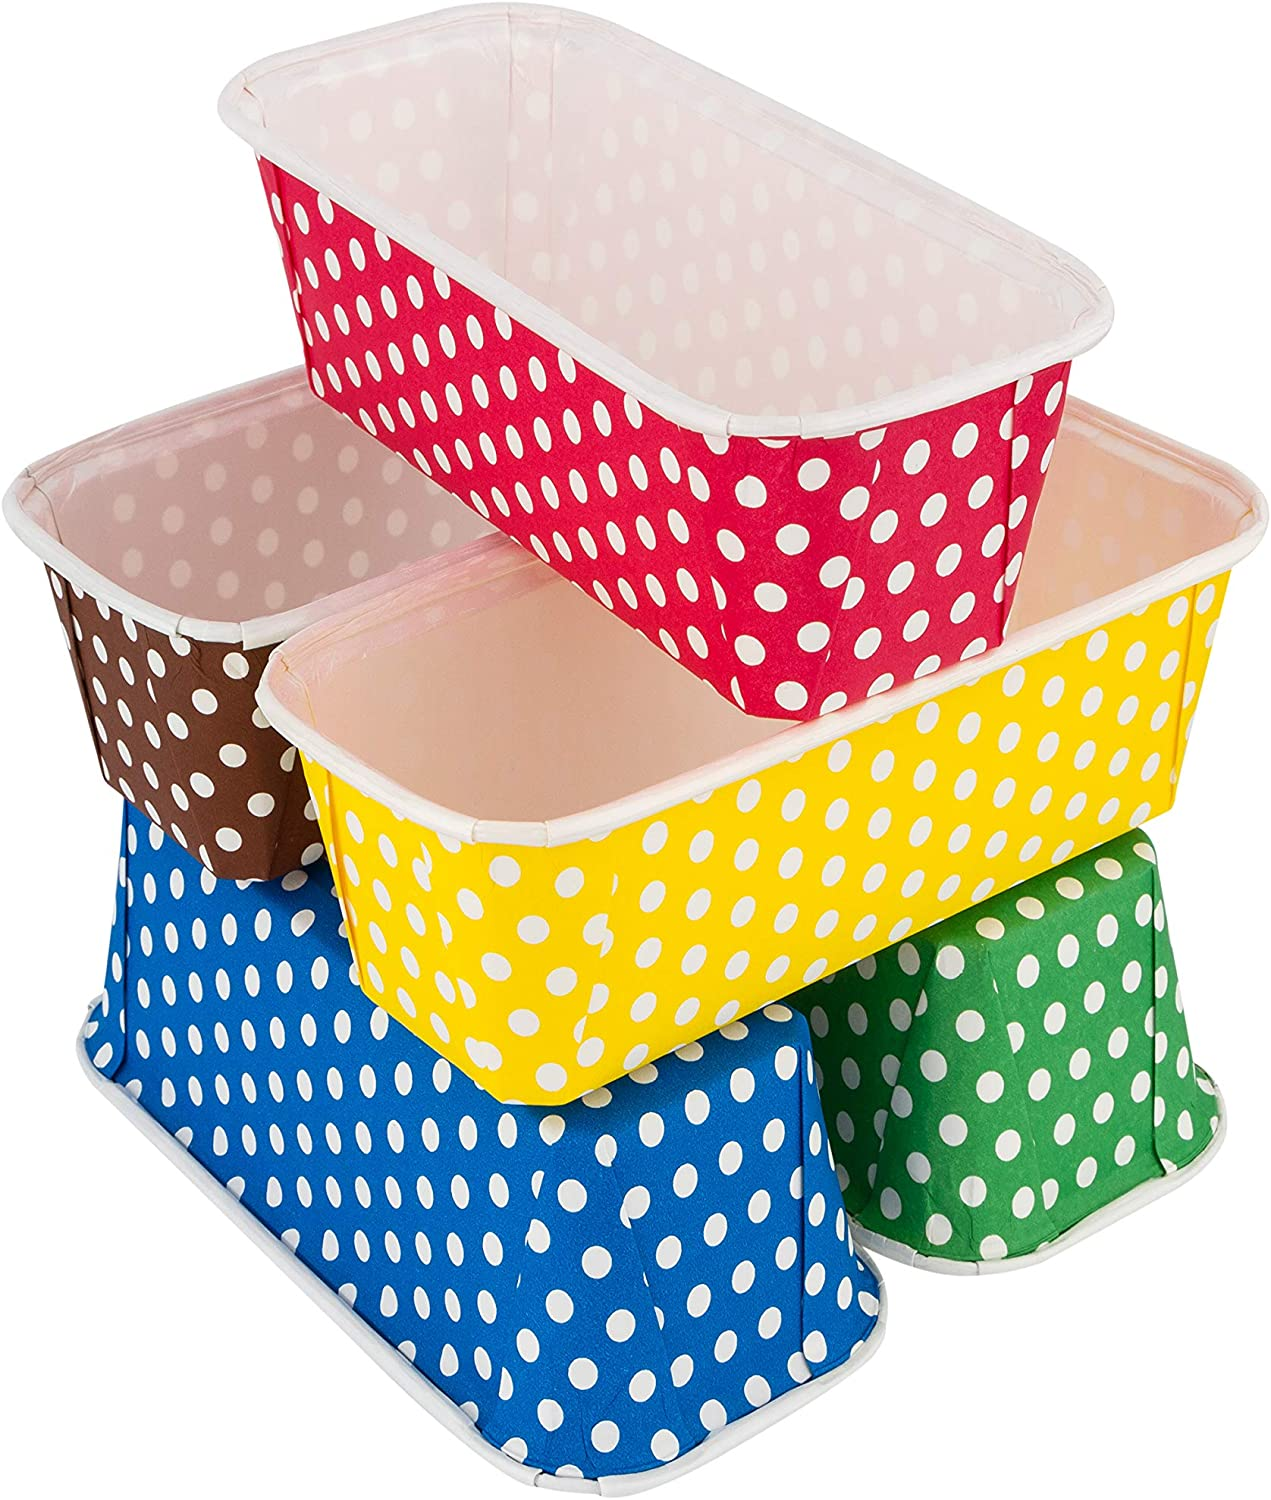 Paper Loaf Pans For Baking 25 Loaf Pan Liners 7x3x2 Mini